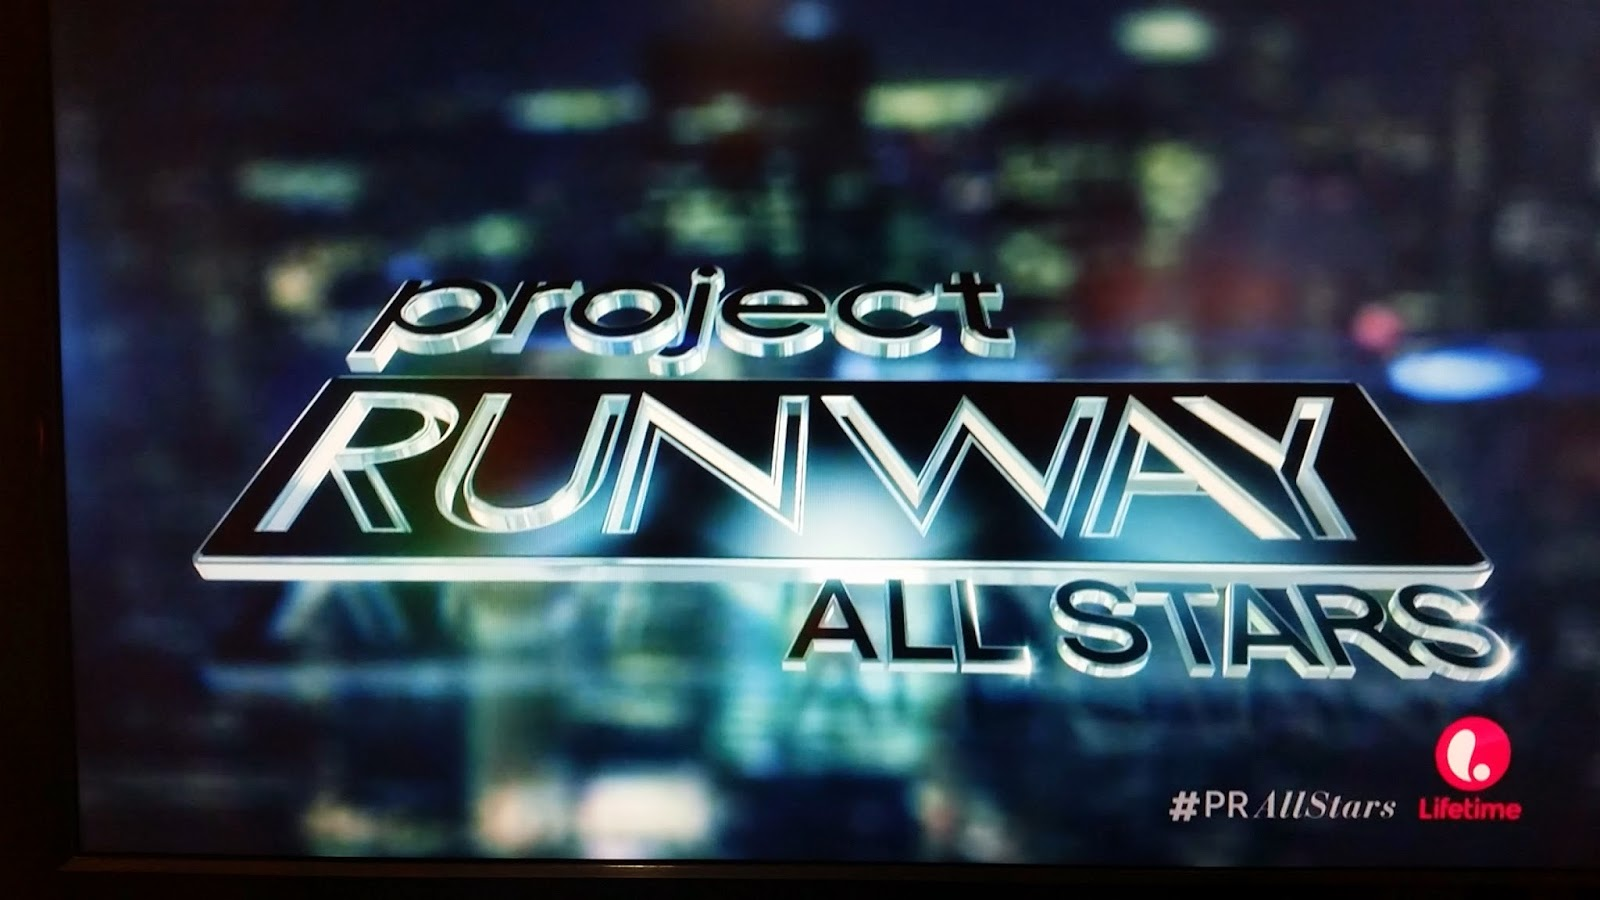 Project Runway All Stars Season 4